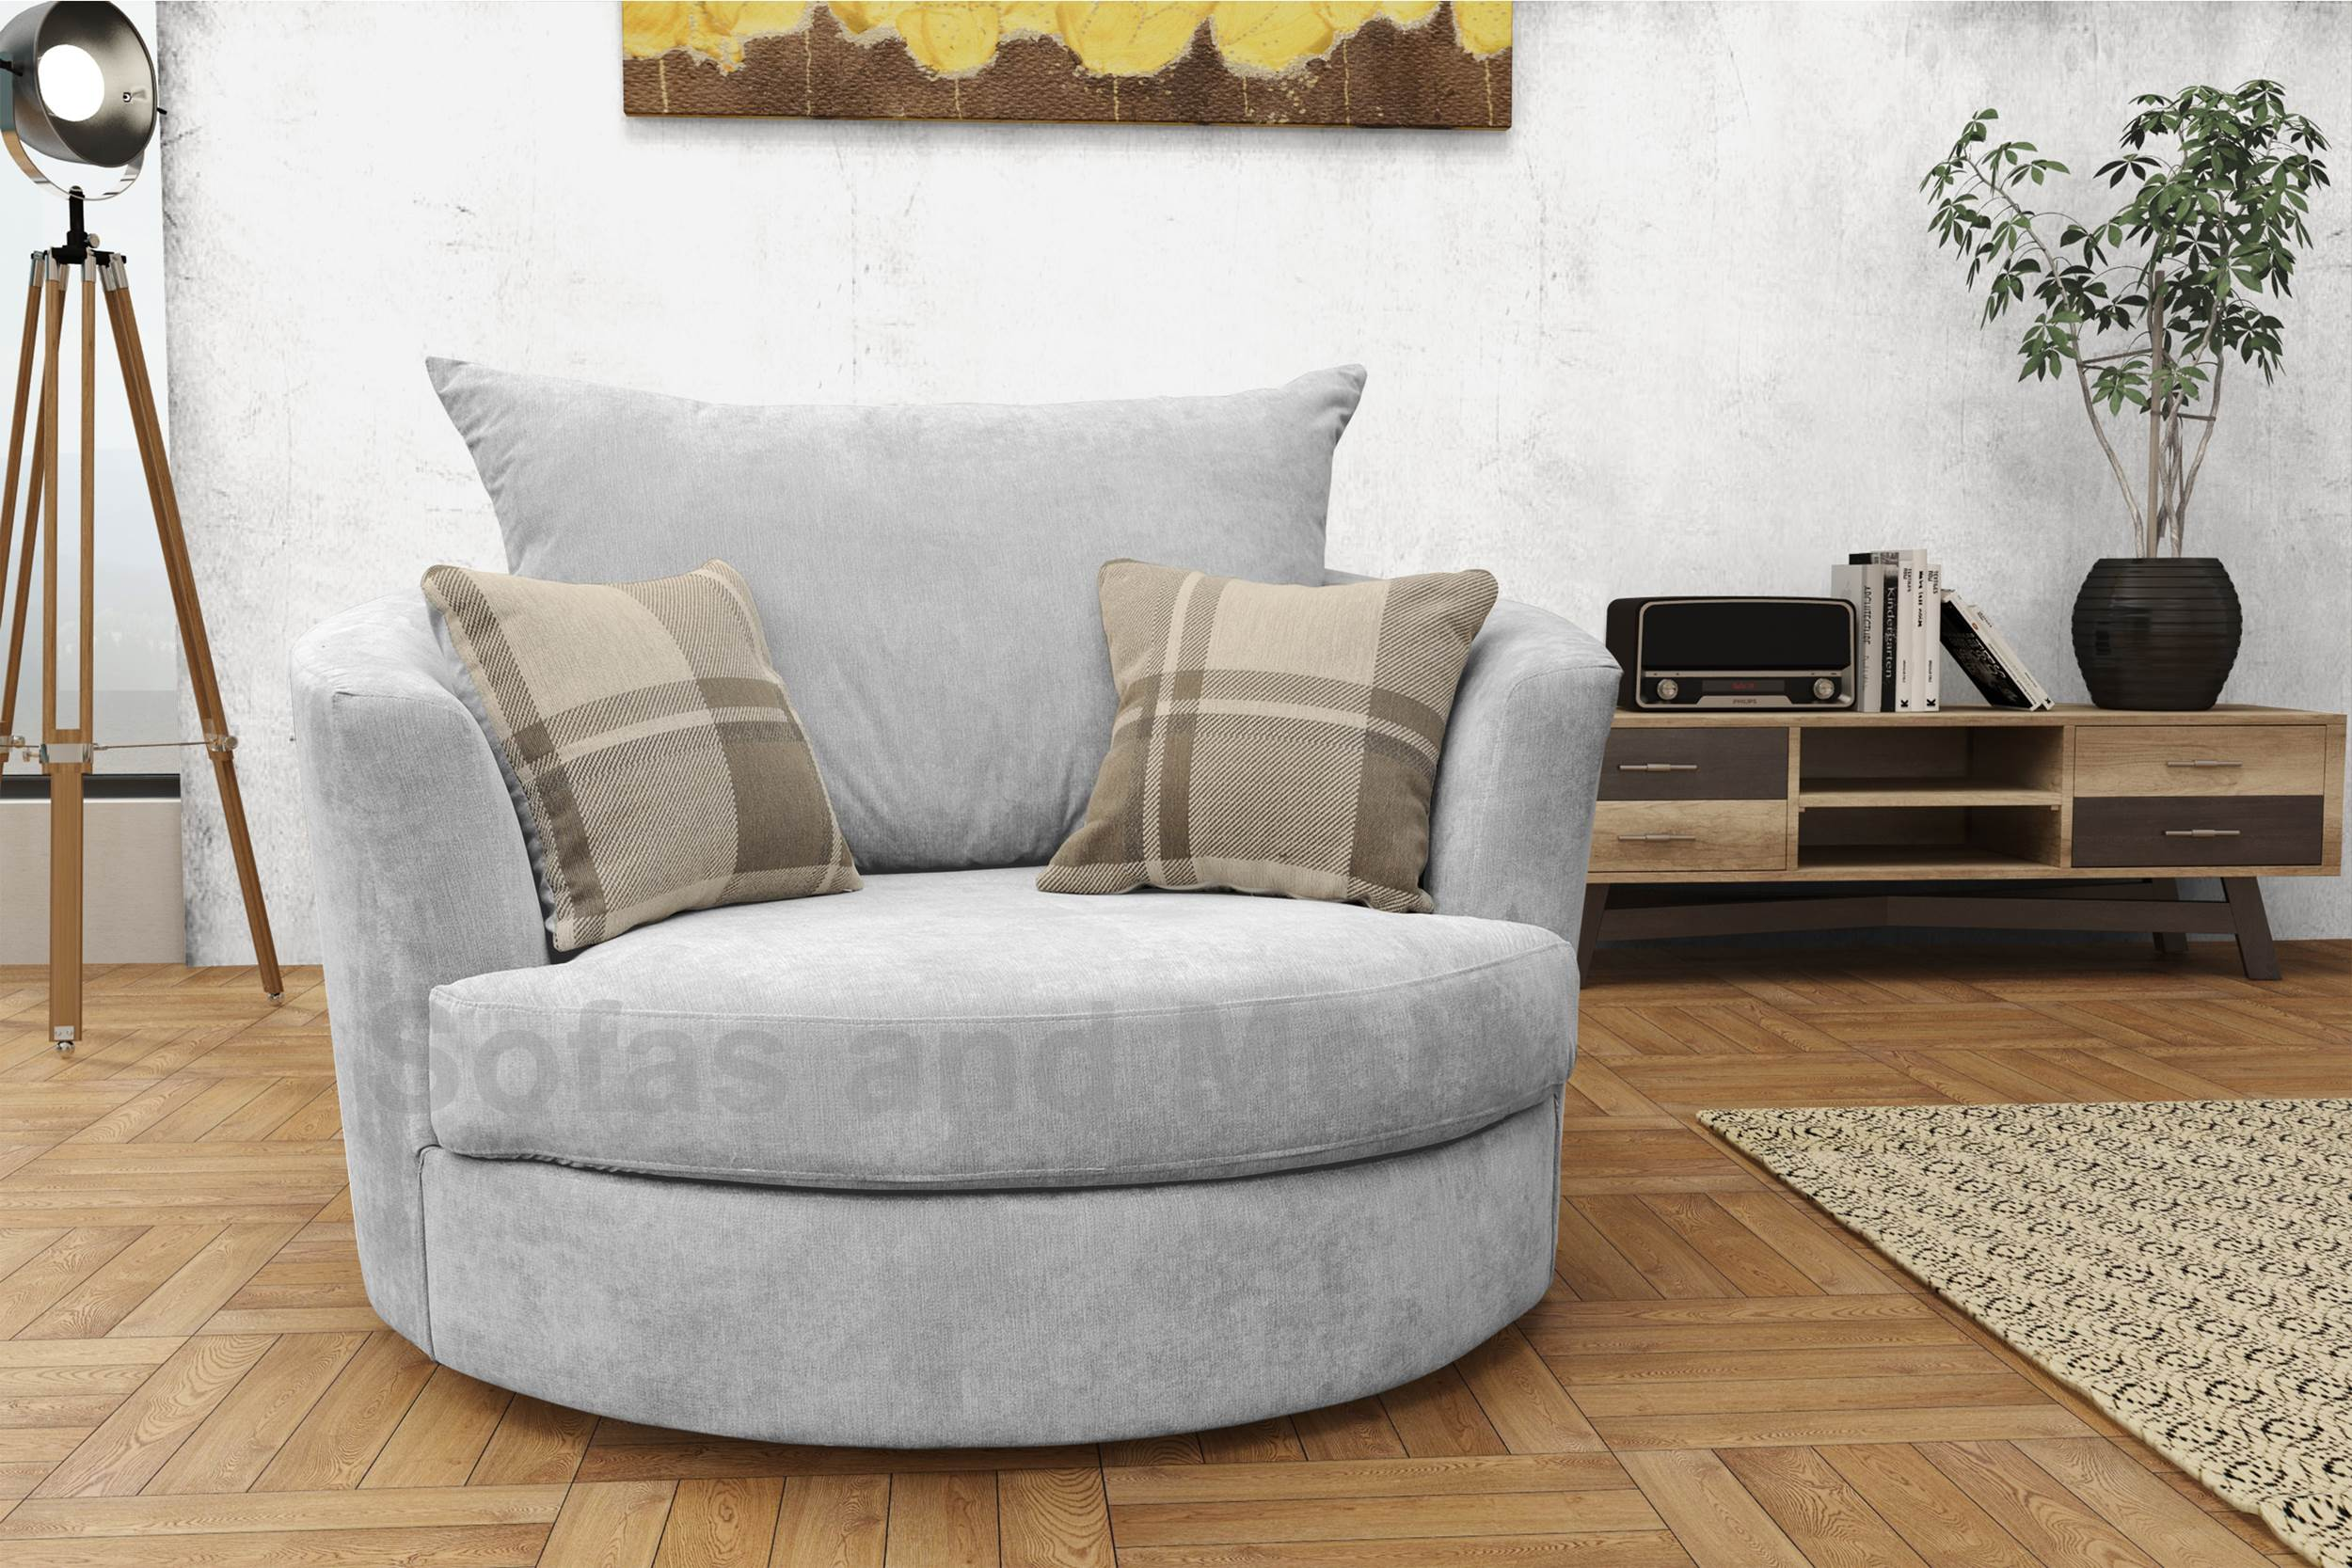 Large Swivel Round Cuddle Chair Fabric Grey Cream Brown